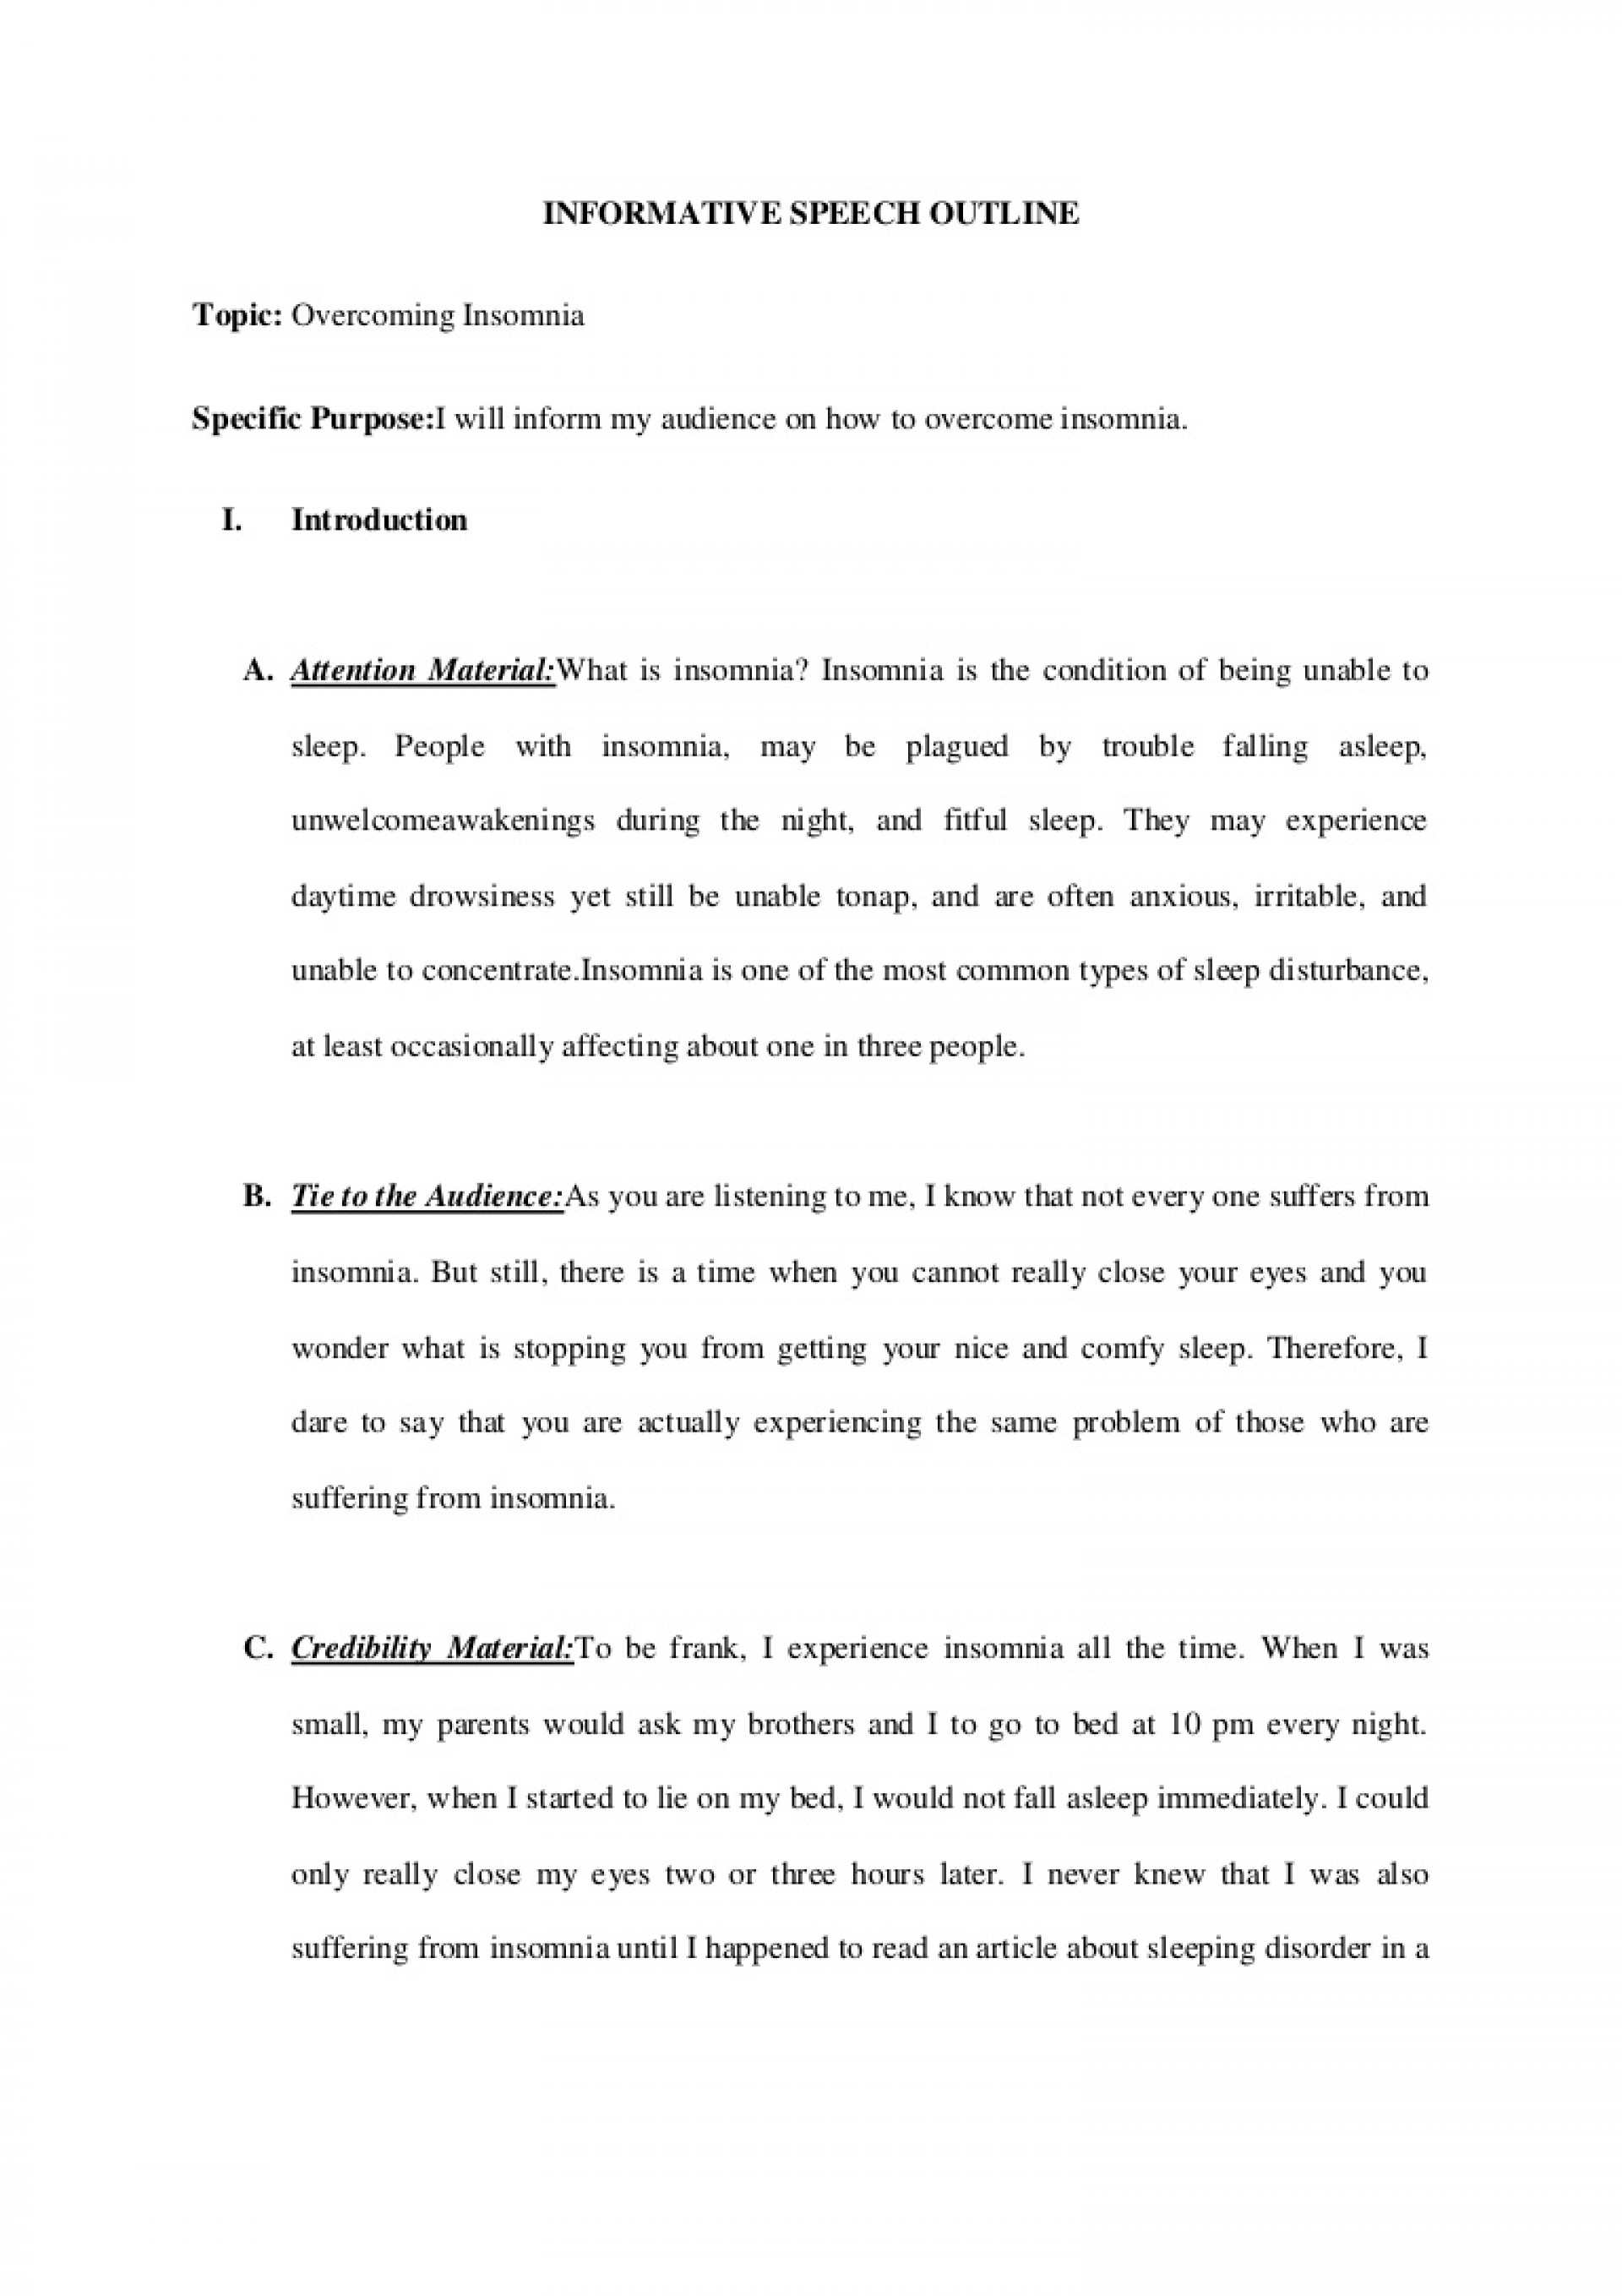 016 Examples Of Informative Essays Informativespeechoutlineovercomeinsomnia Phpapp02 Thumbnail Essay Staggering Writing For High School Expository Middle Samples 1920